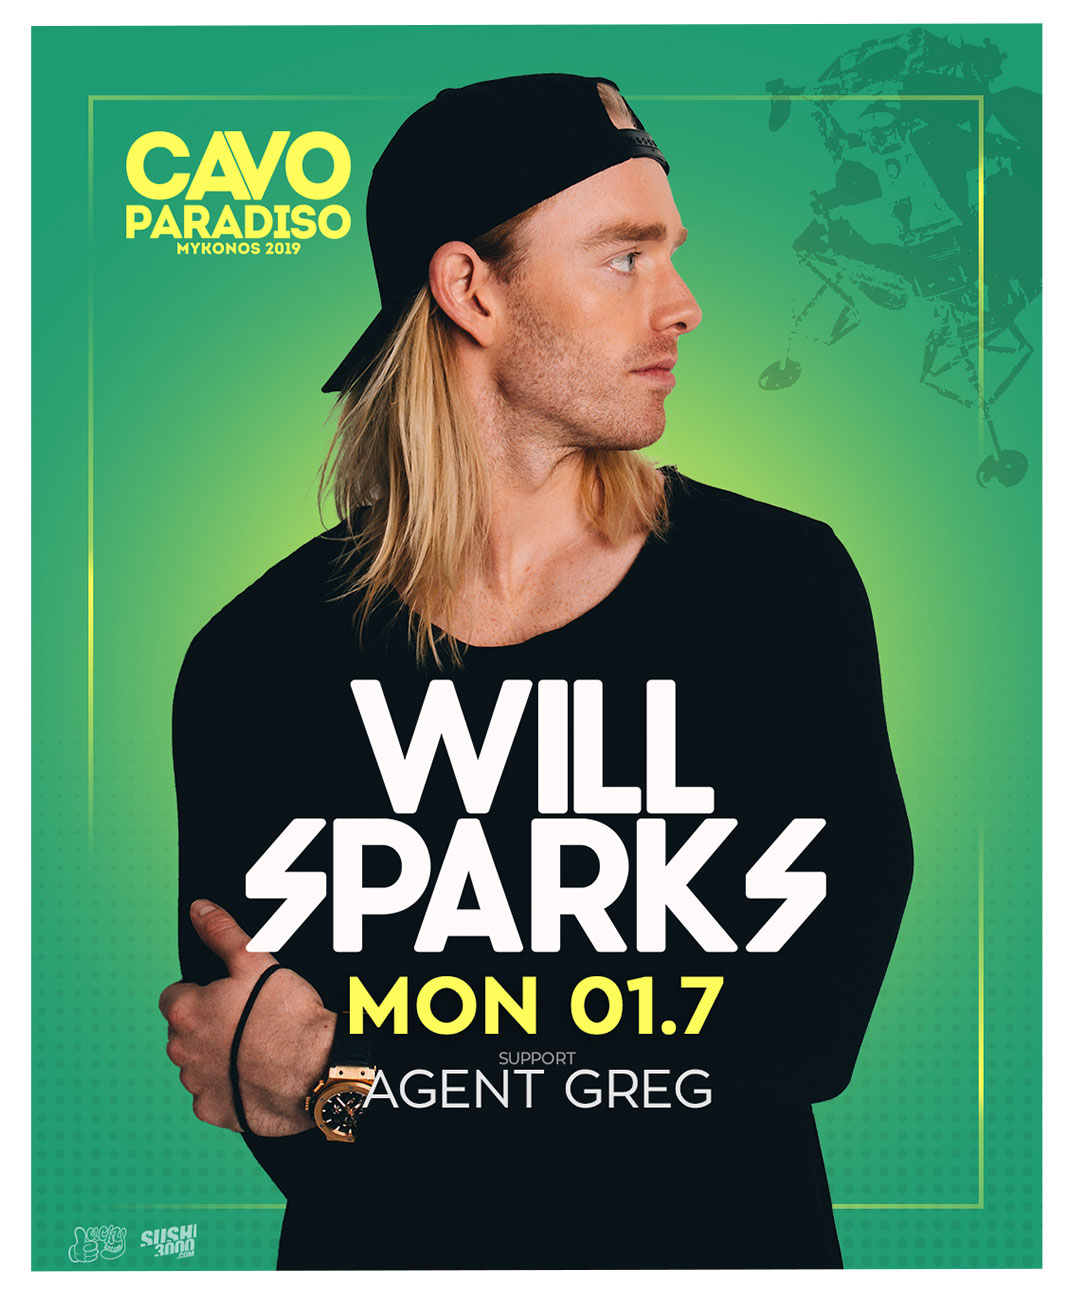 Will Sparks w/ support from Agent Greg